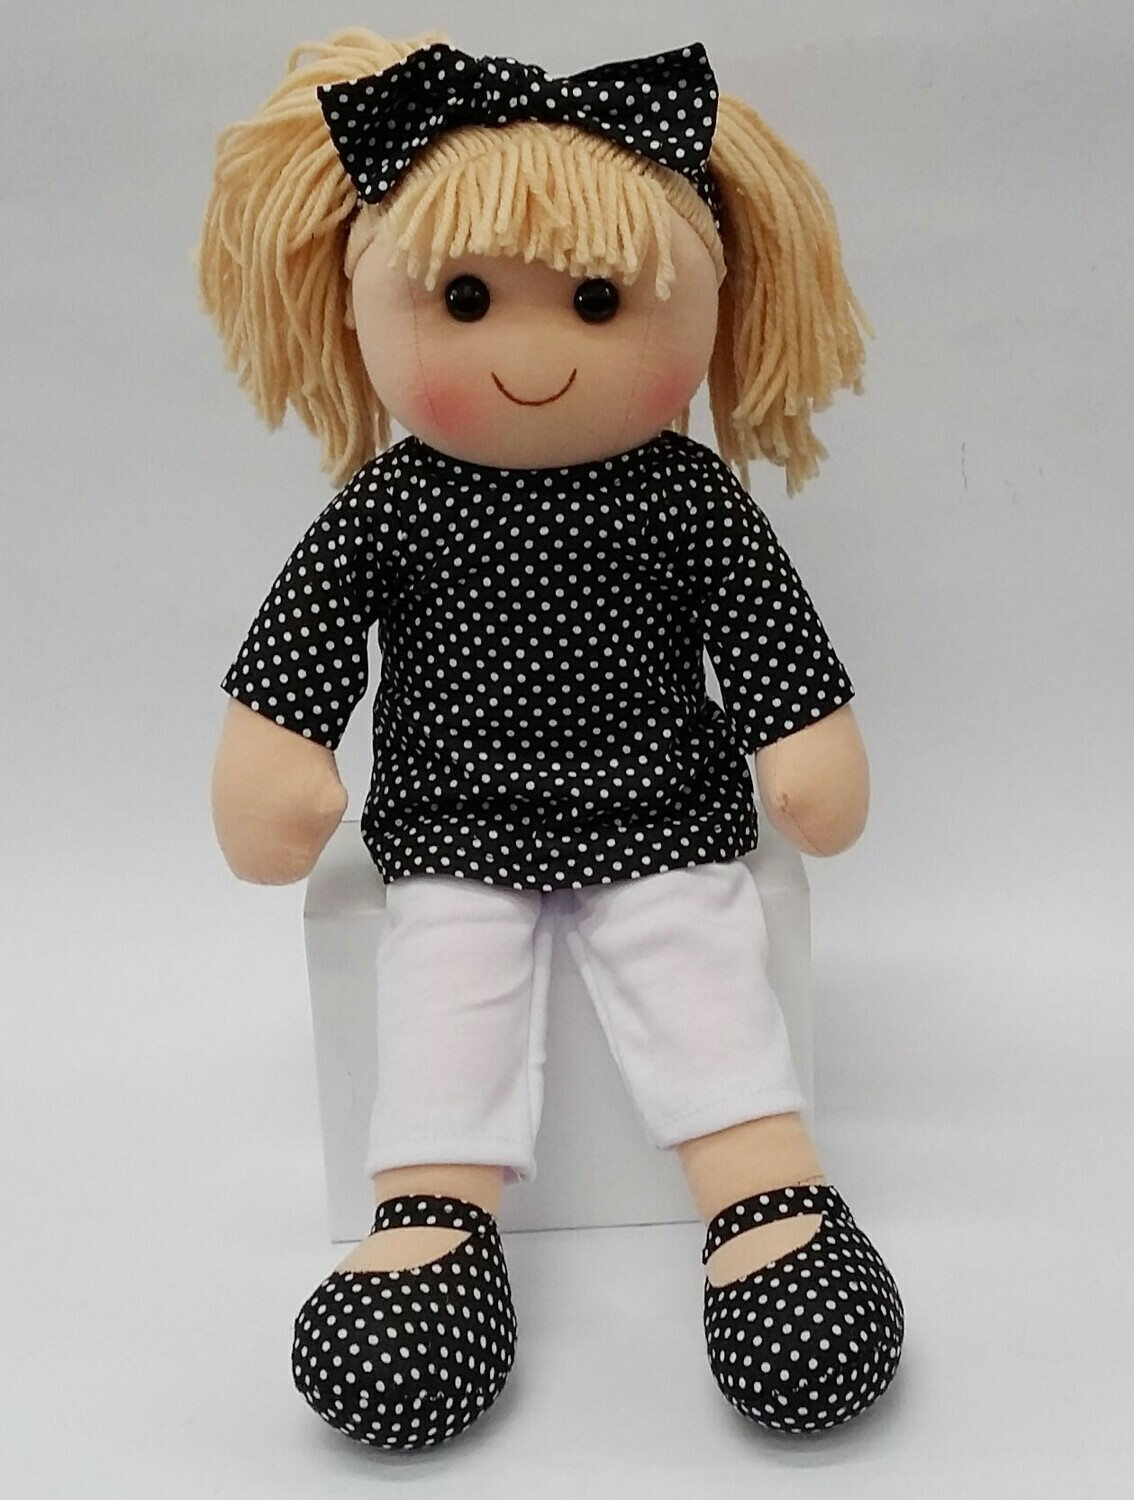 Collectable Doll - Kate